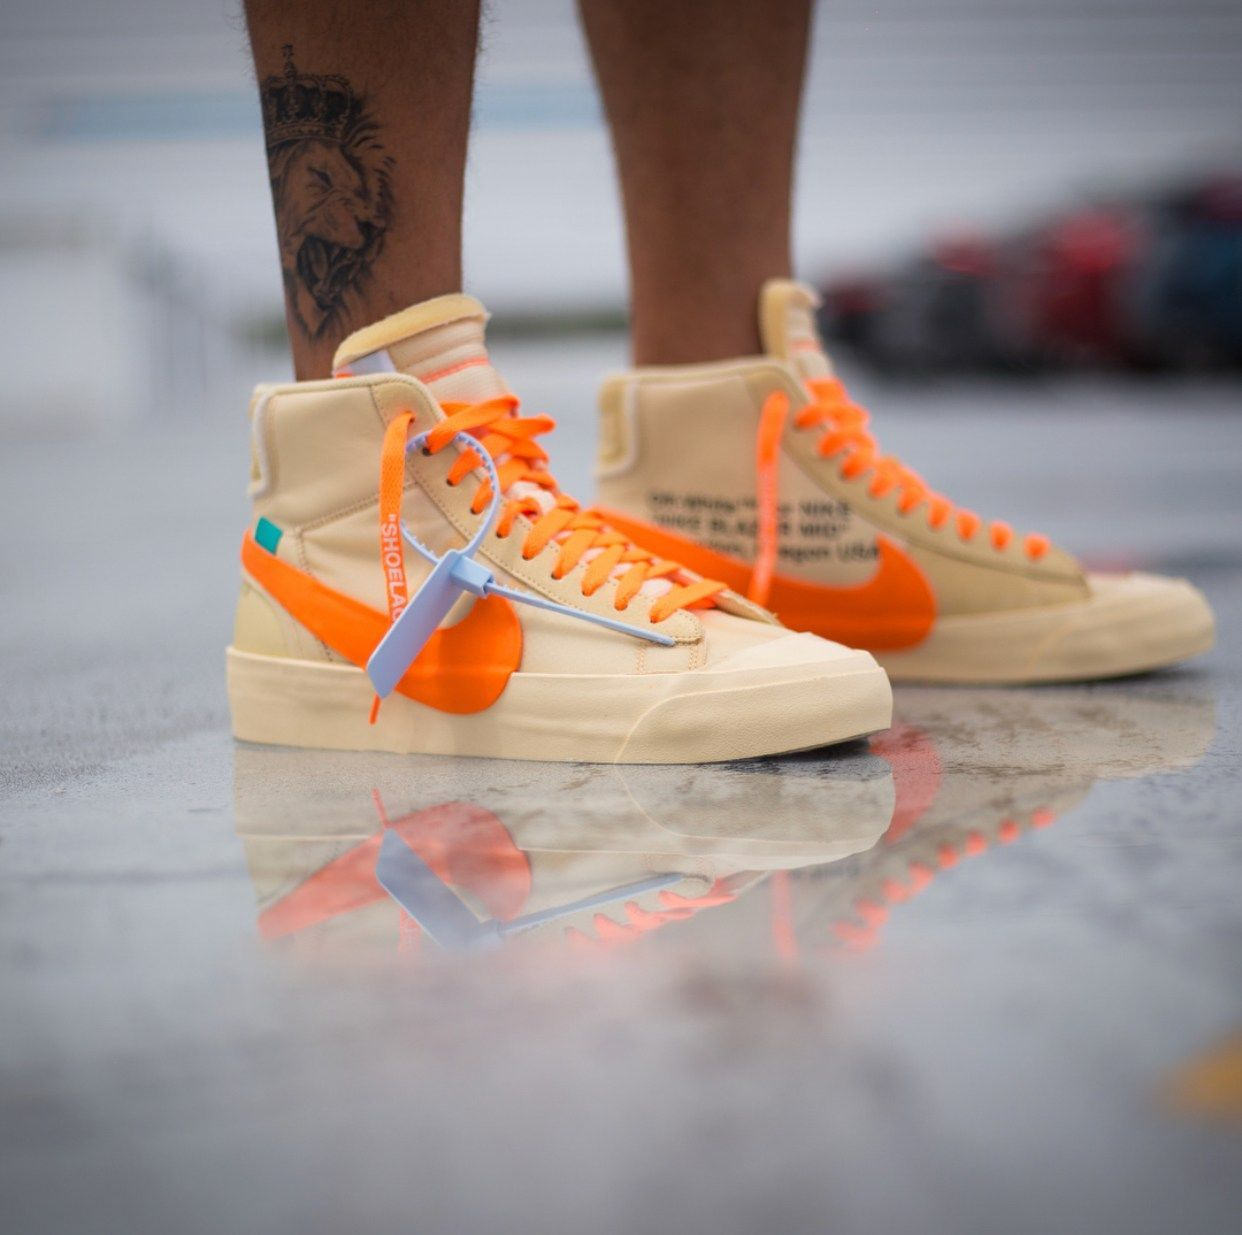 Eve in Mid Off White All Hallow's 2019 Nike Blazer Studio fgm6IbY7yv